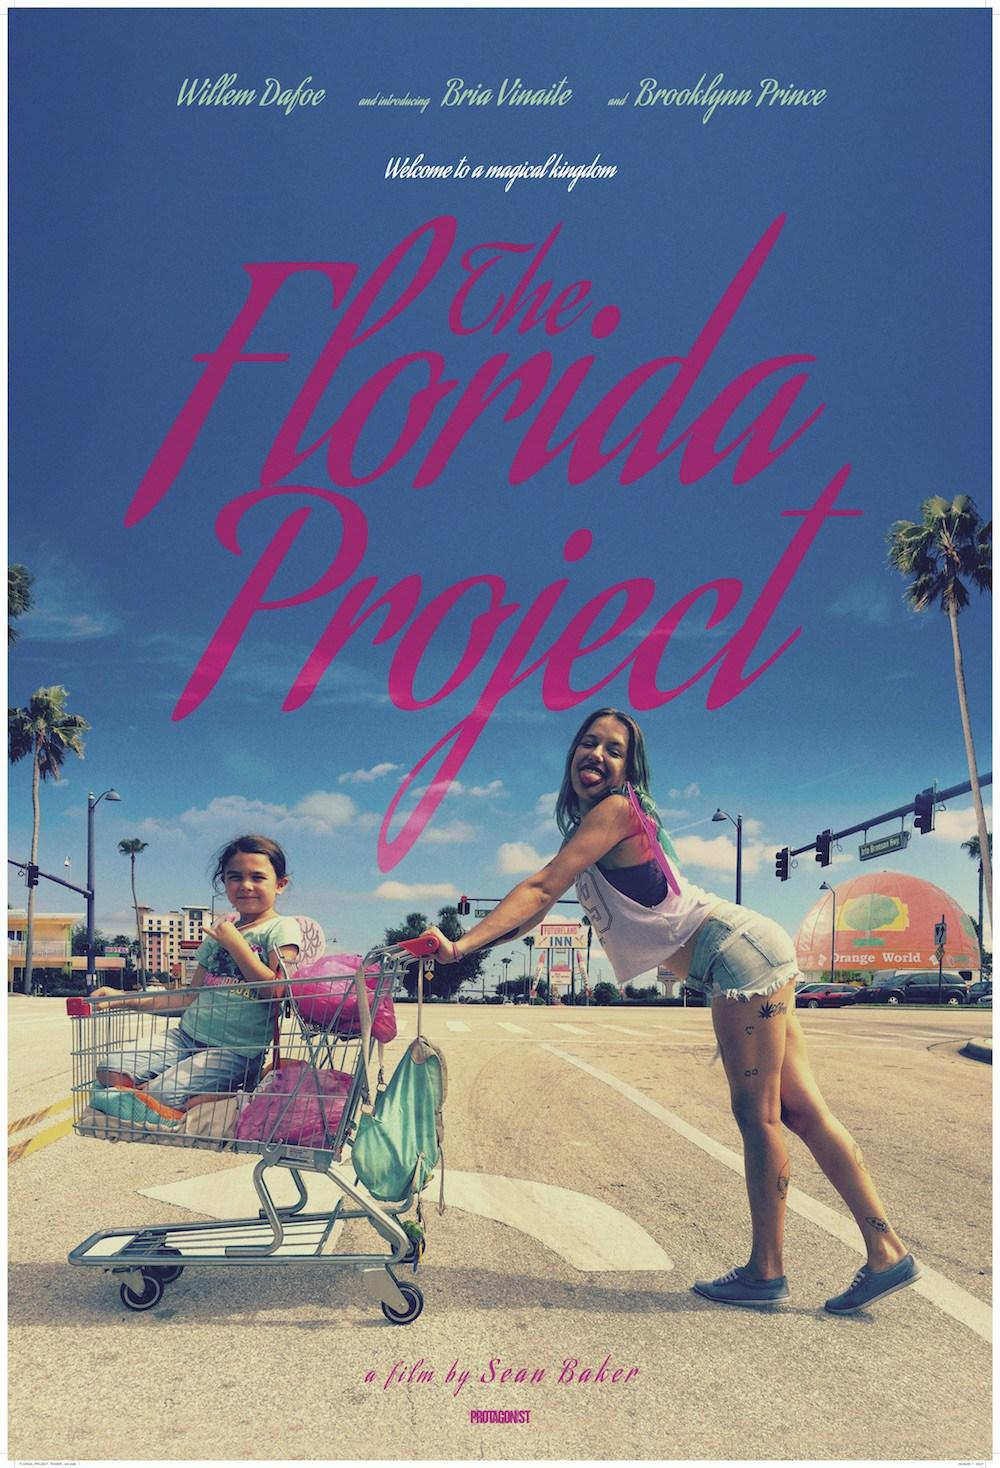 The Florida Project  (2017)  IMDB Link:  https://www.imdb.com/title/tt5649144/